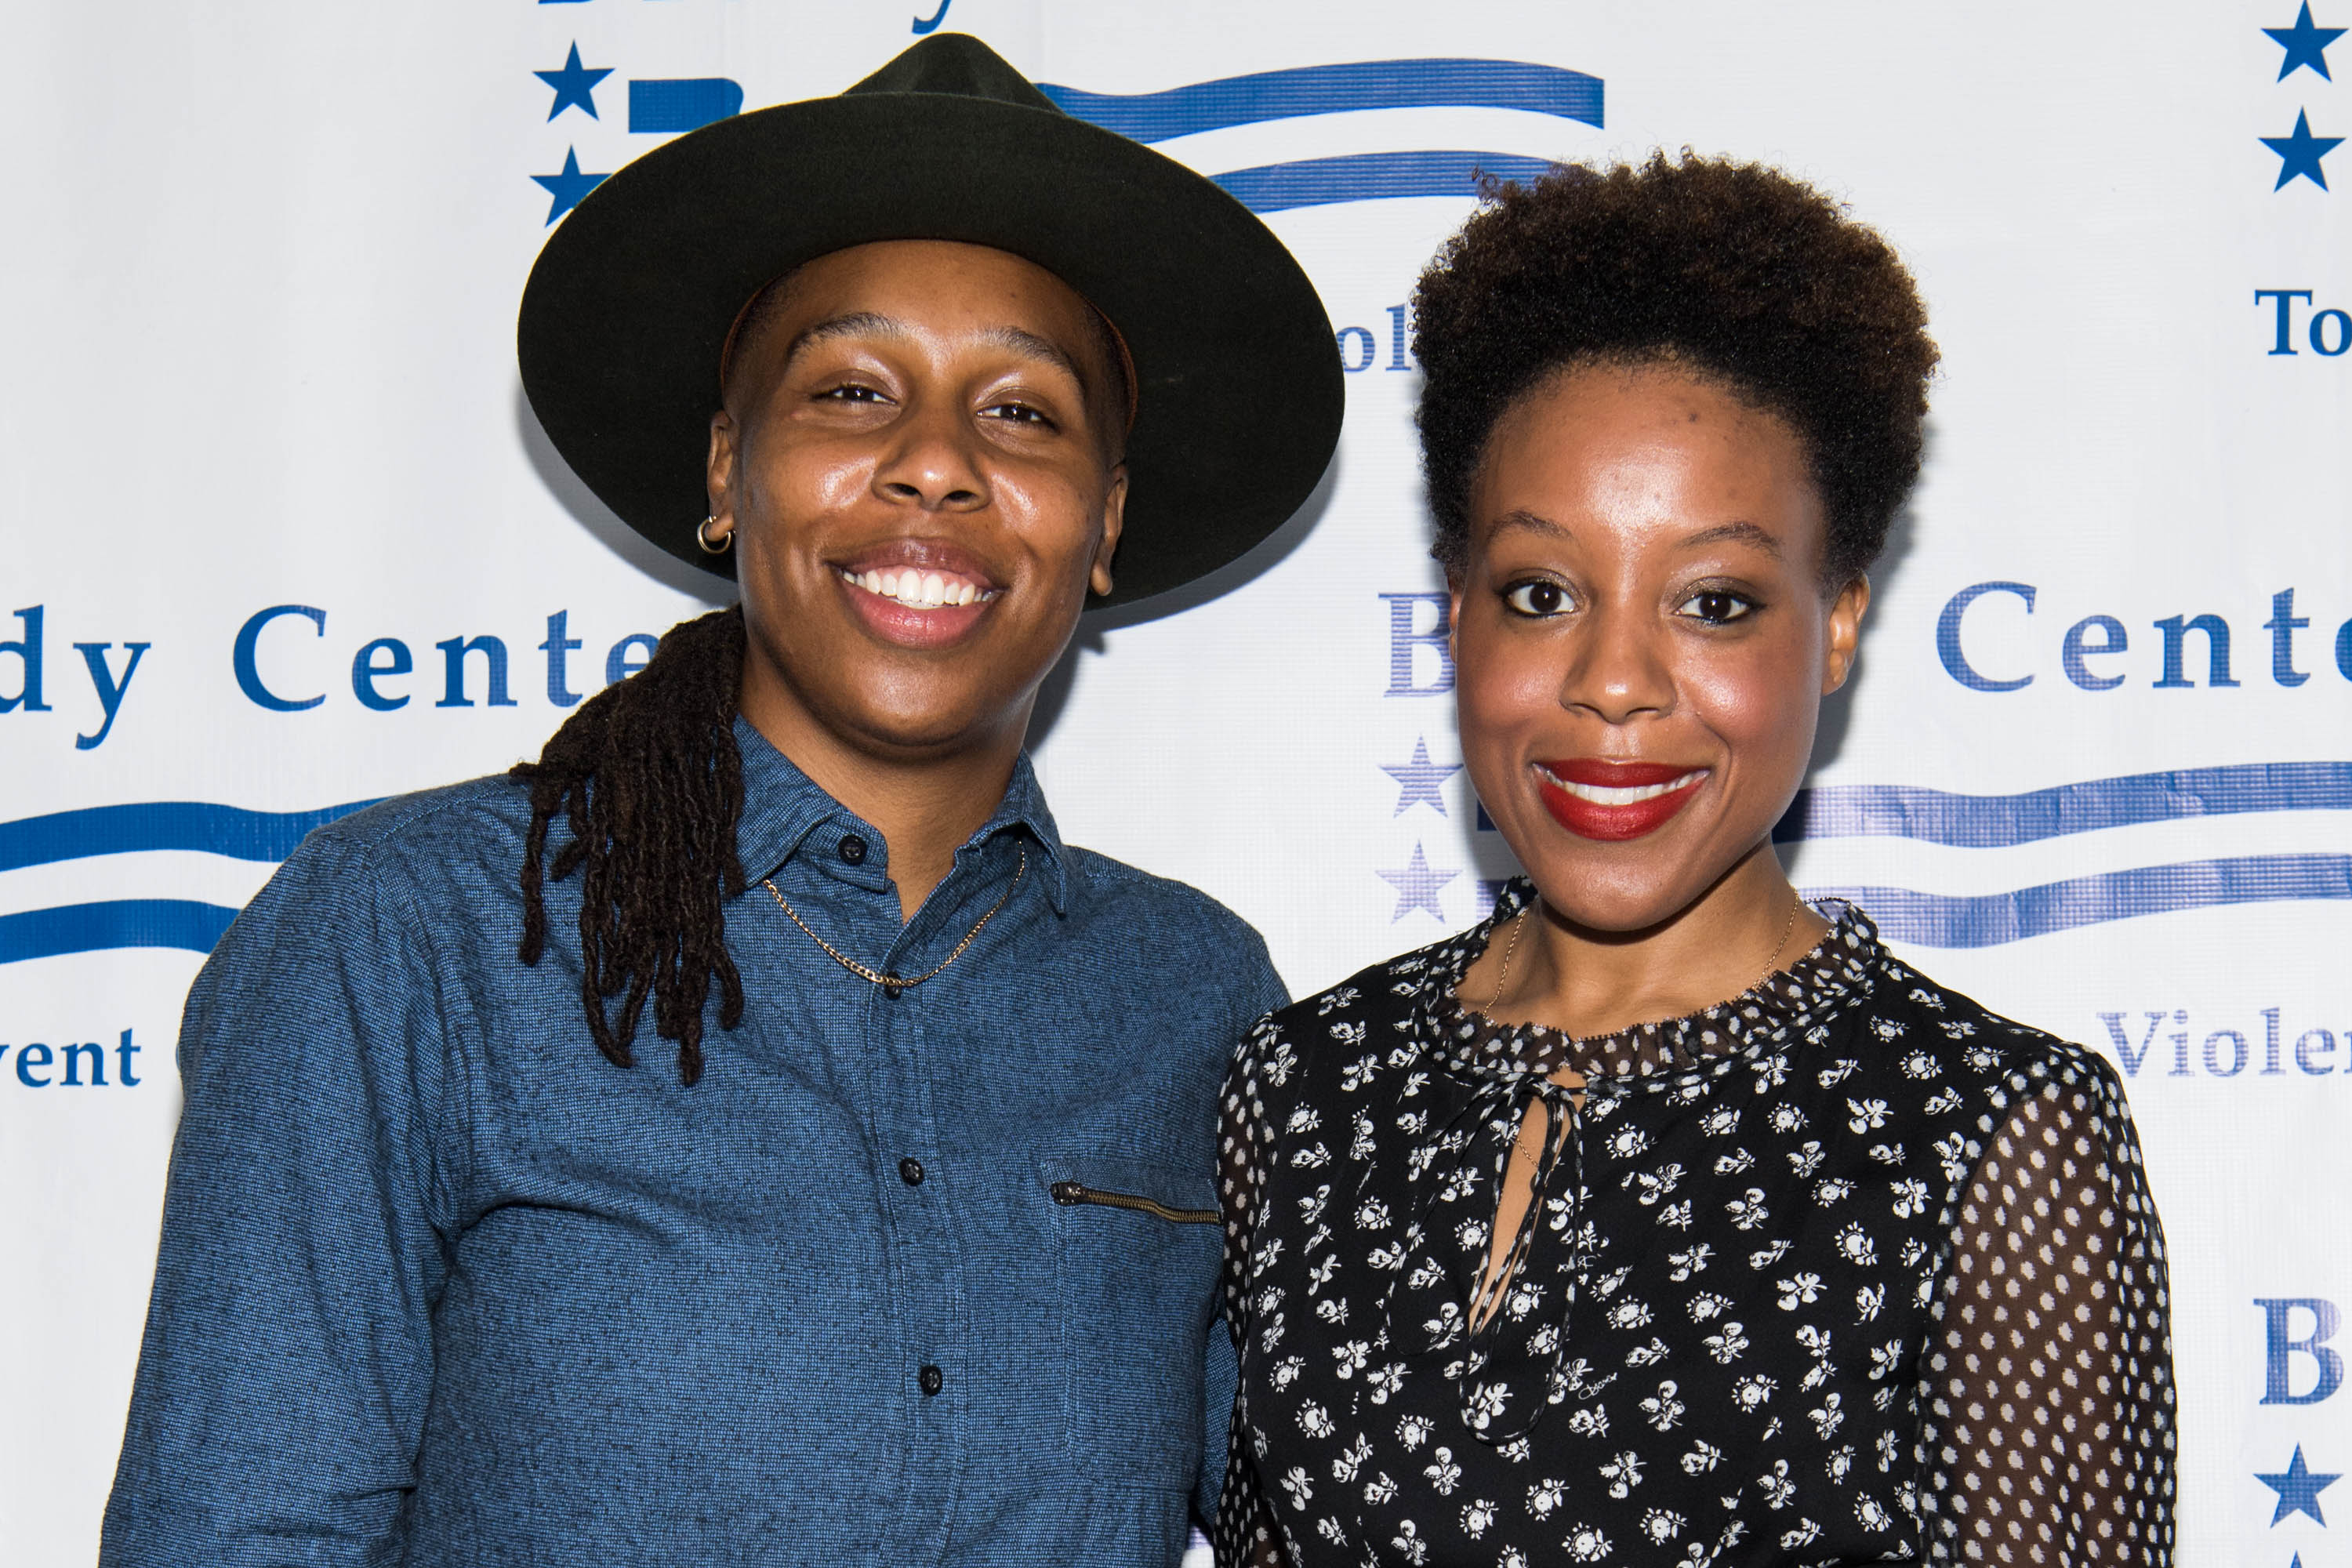 Lena Waithe and Alana Mayo at the Brady Center's Bear Awards Gala on June 7, 2017 in California | Photo: Getty Images